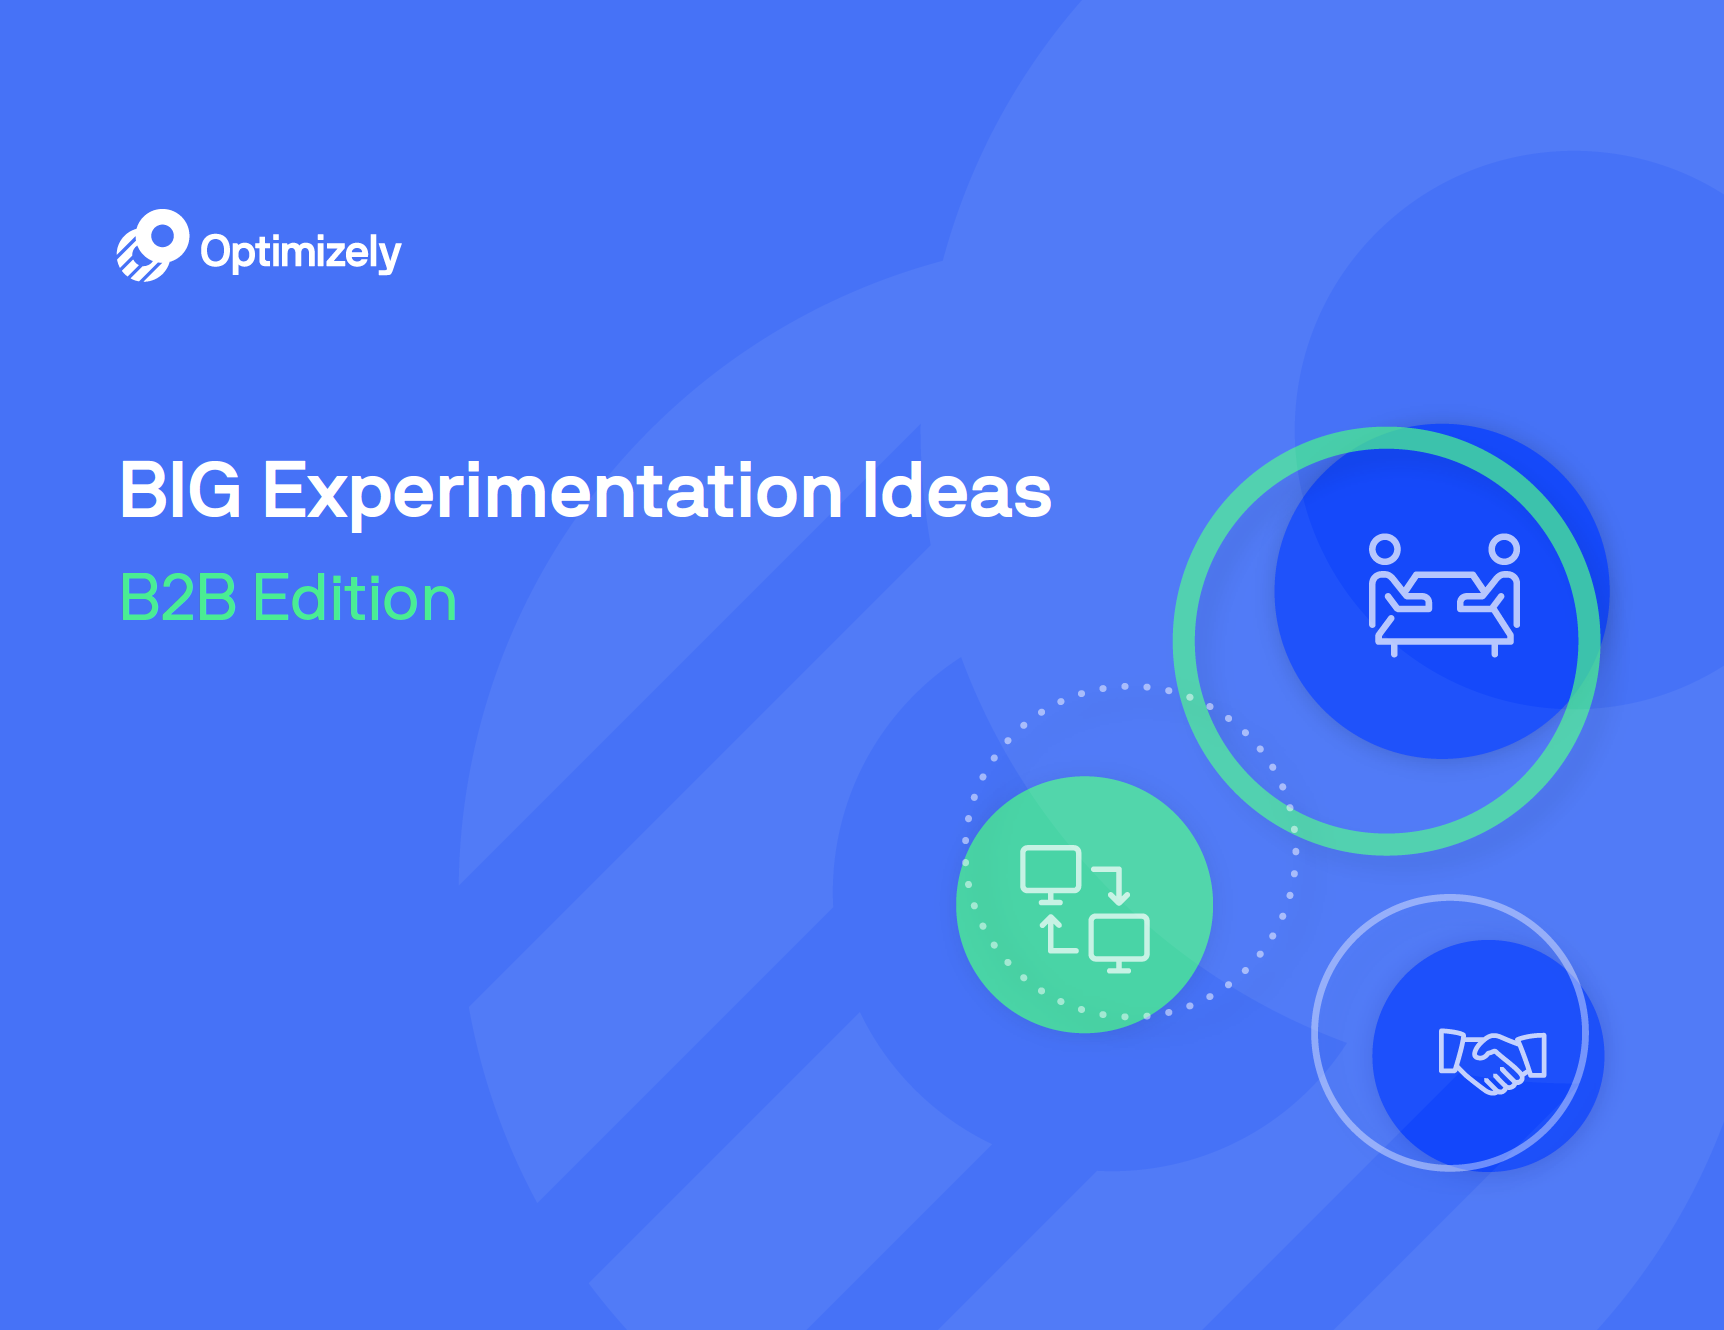 Big Experimentation Ideas: B2B Edition